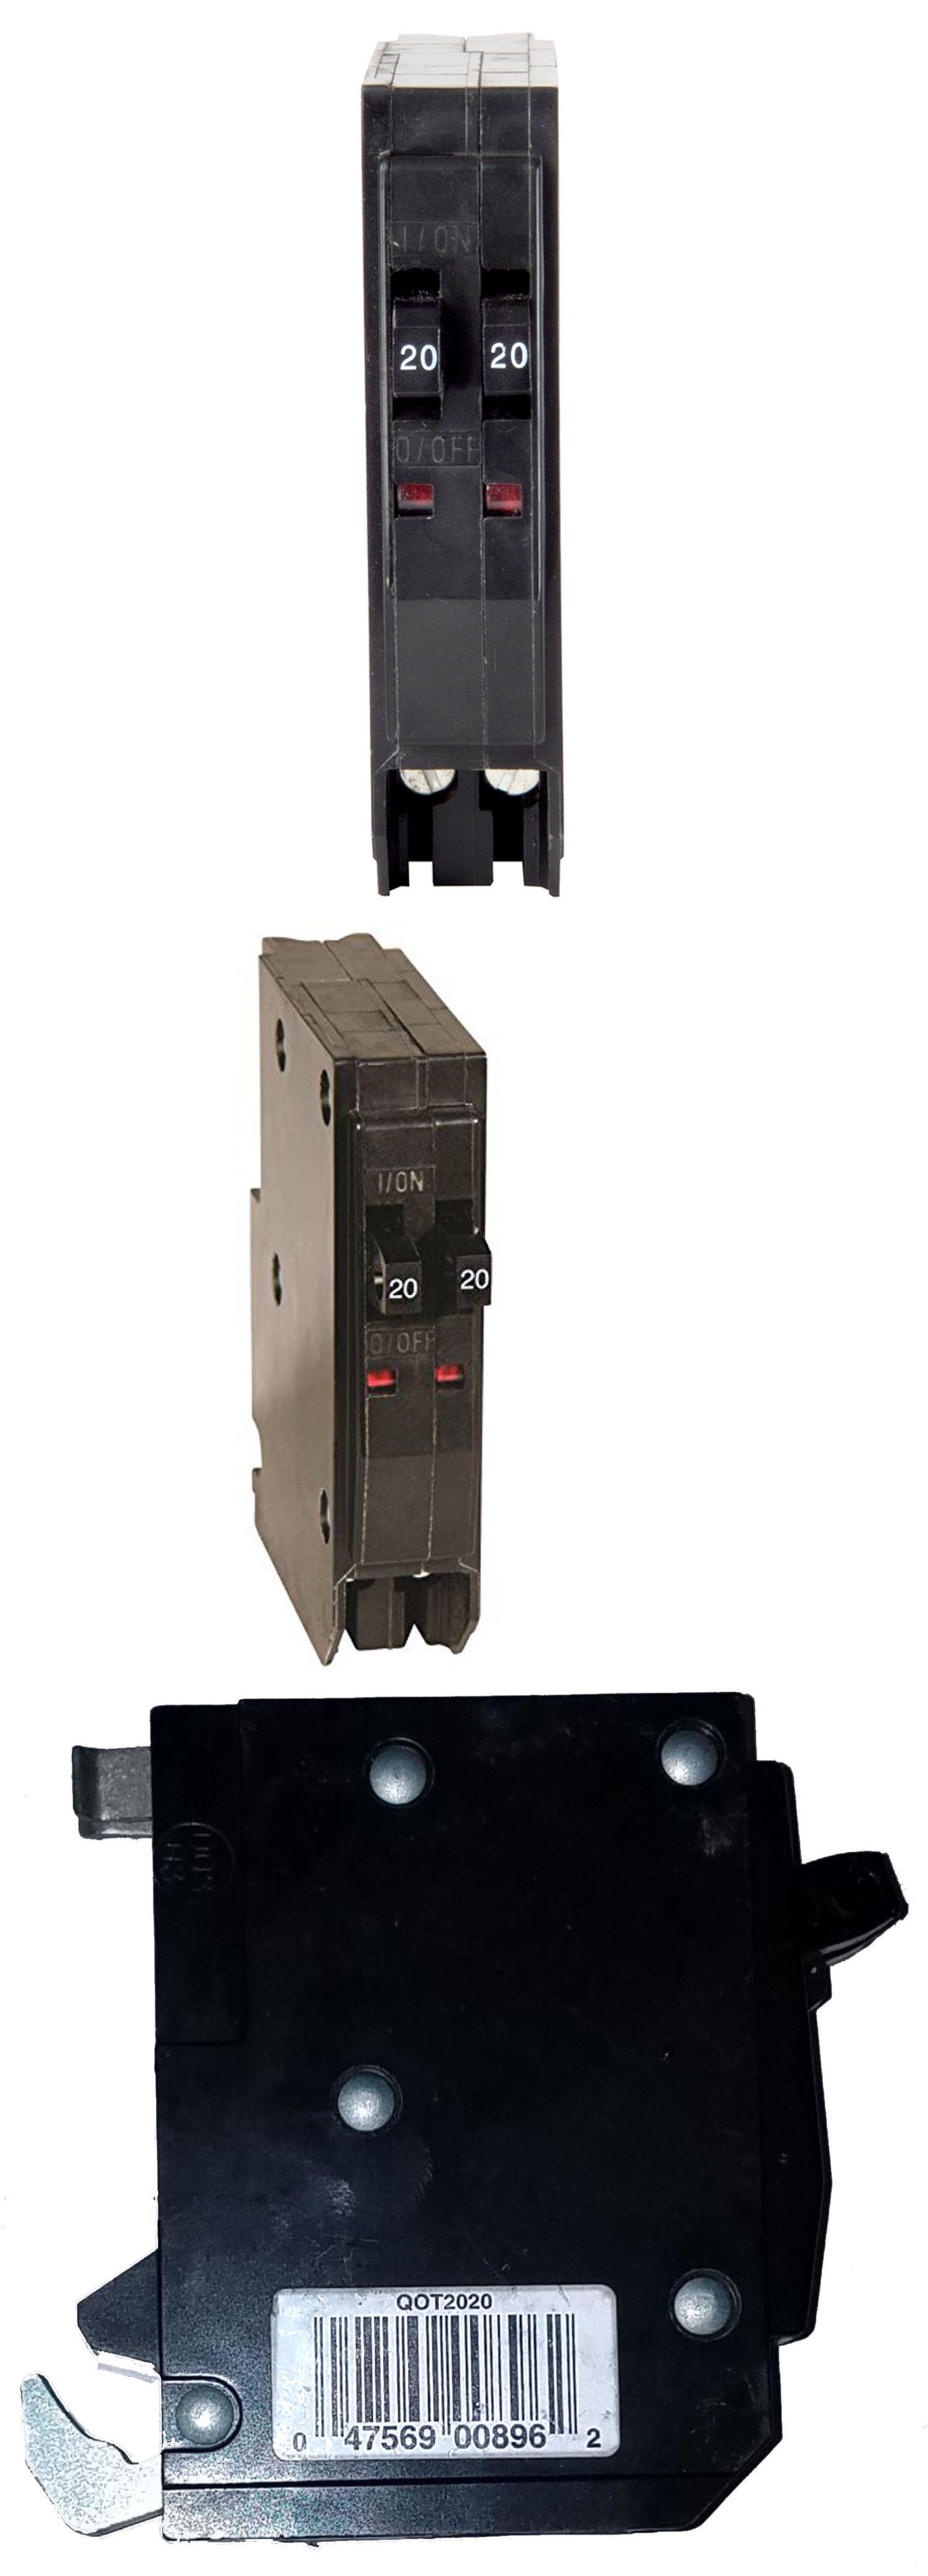 hight resolution of circuit breakers and fuse boxes 20596 square d qo 20 amp 1 pole tandem circuit breaker buy it now only 15 on ebay circuit breakers boxes square